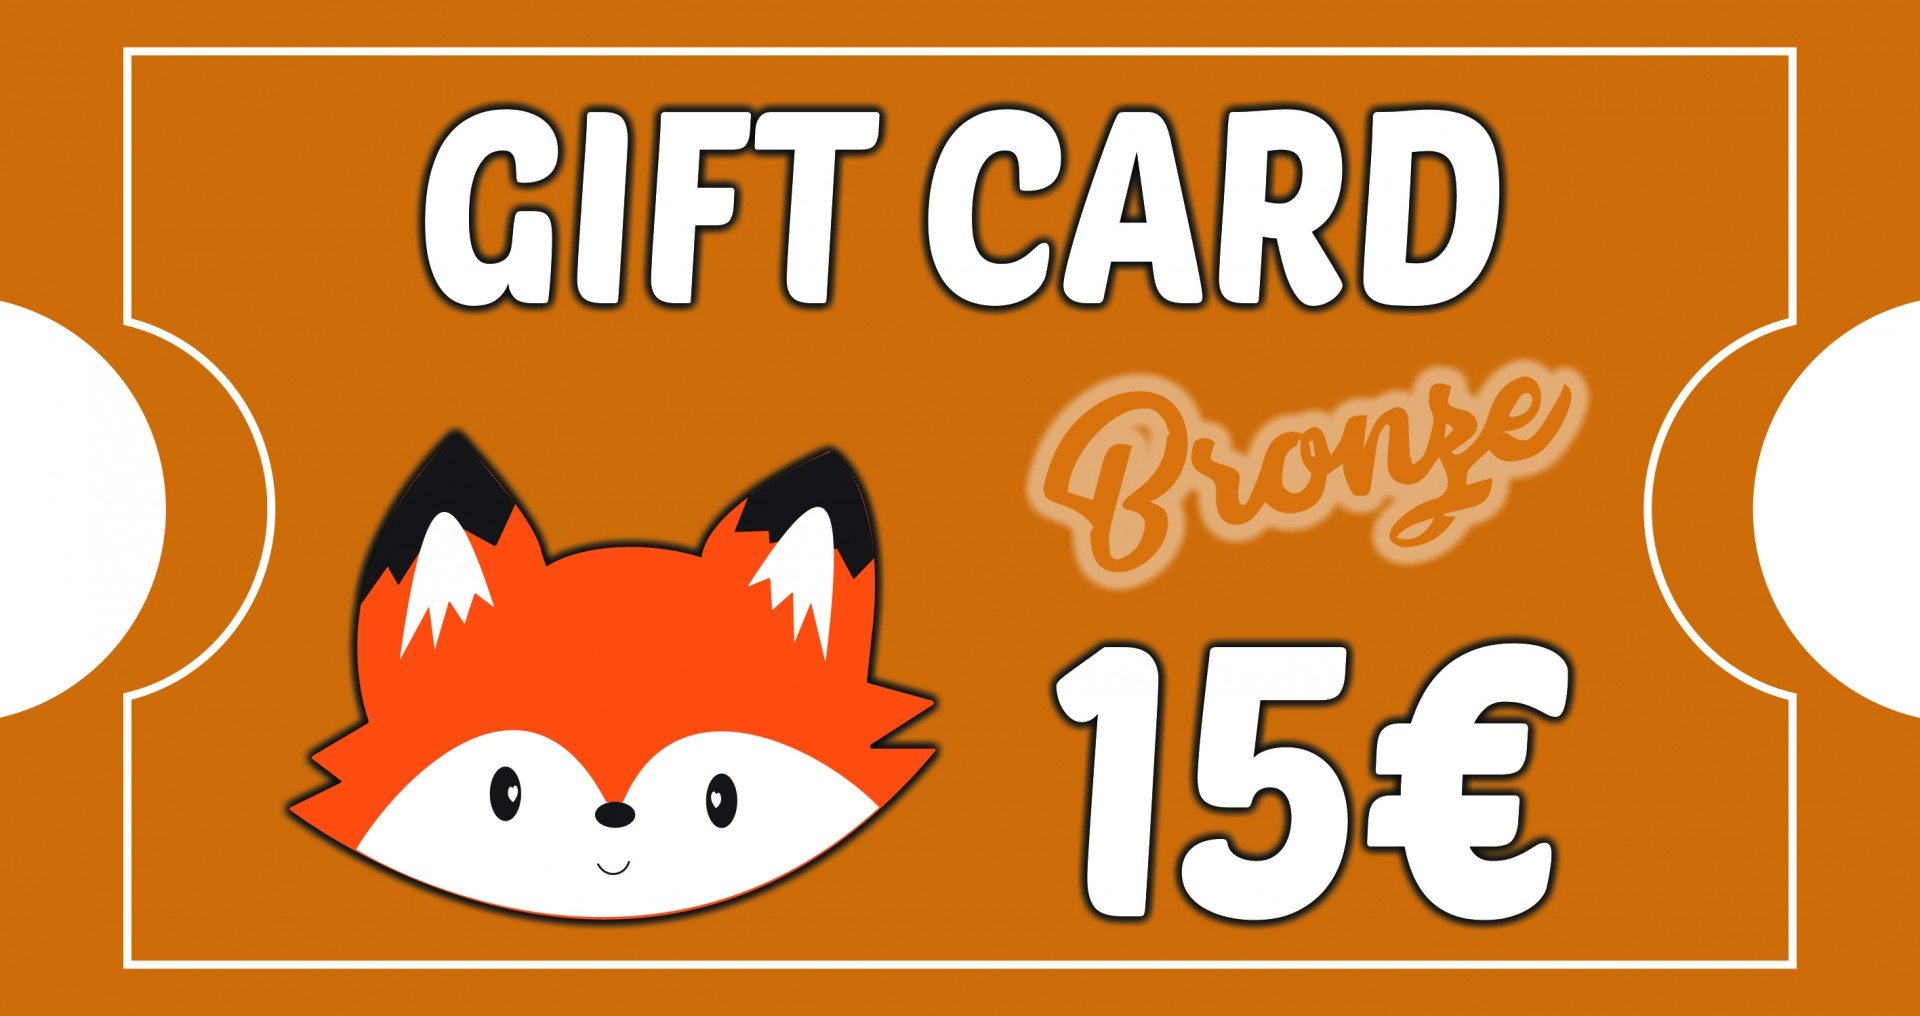 Gift Card Bronze - BOSQUE FELIZ